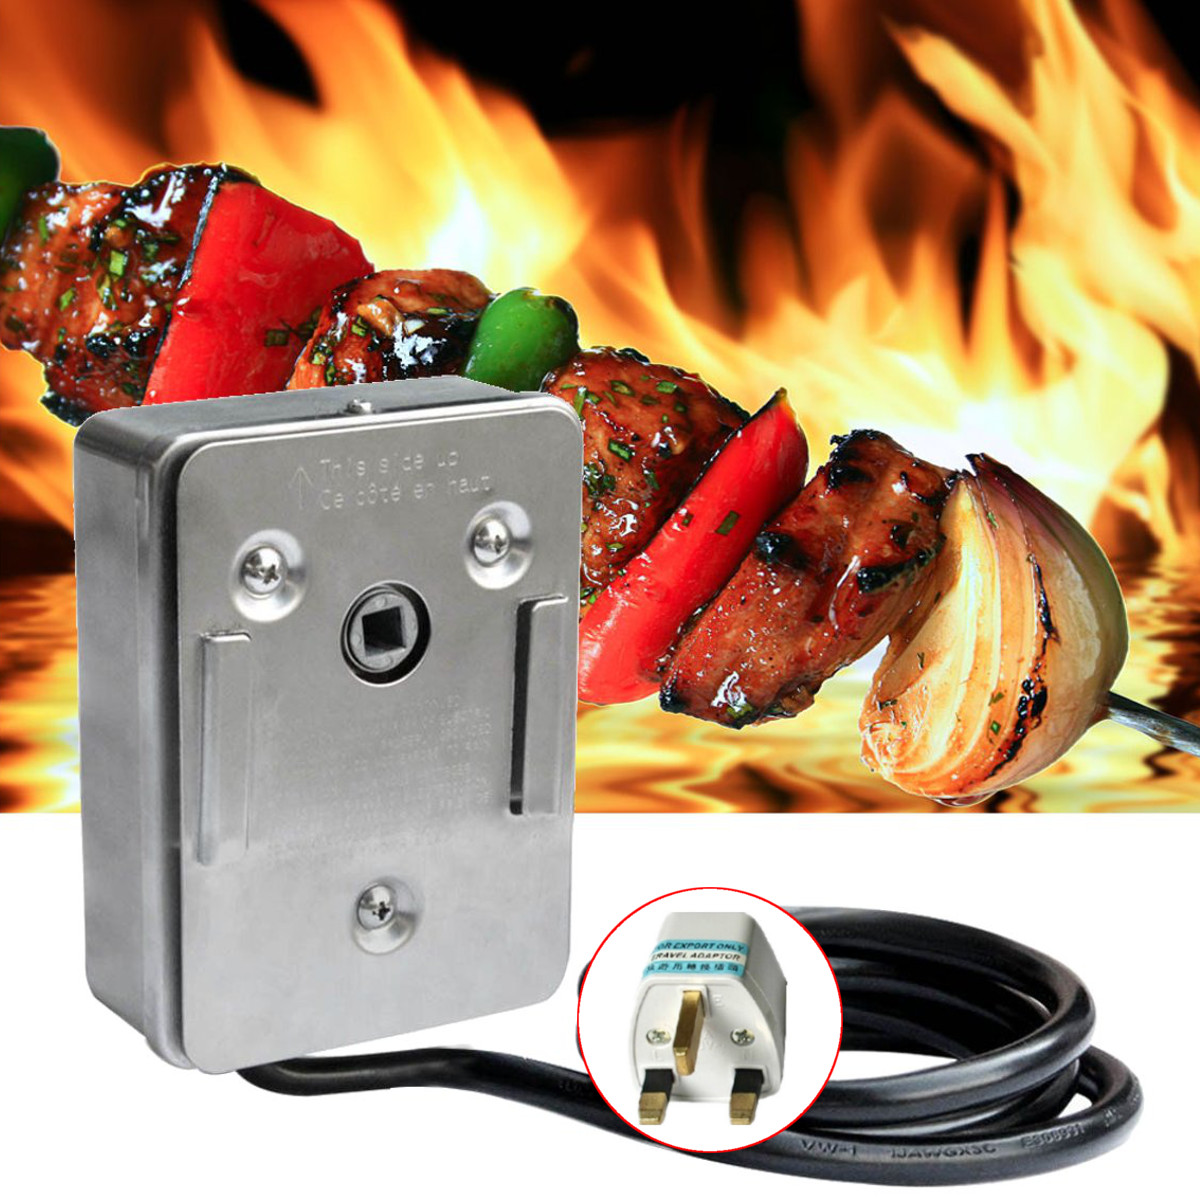 220V Universal Grill Electric Replacement BBQ Grill Heavy   Stainless Steel Rotisserie Motor Electric Motor220V Universal Grill Electric Replacement BBQ Grill Heavy   Stainless Steel Rotisserie Motor Electric Motor